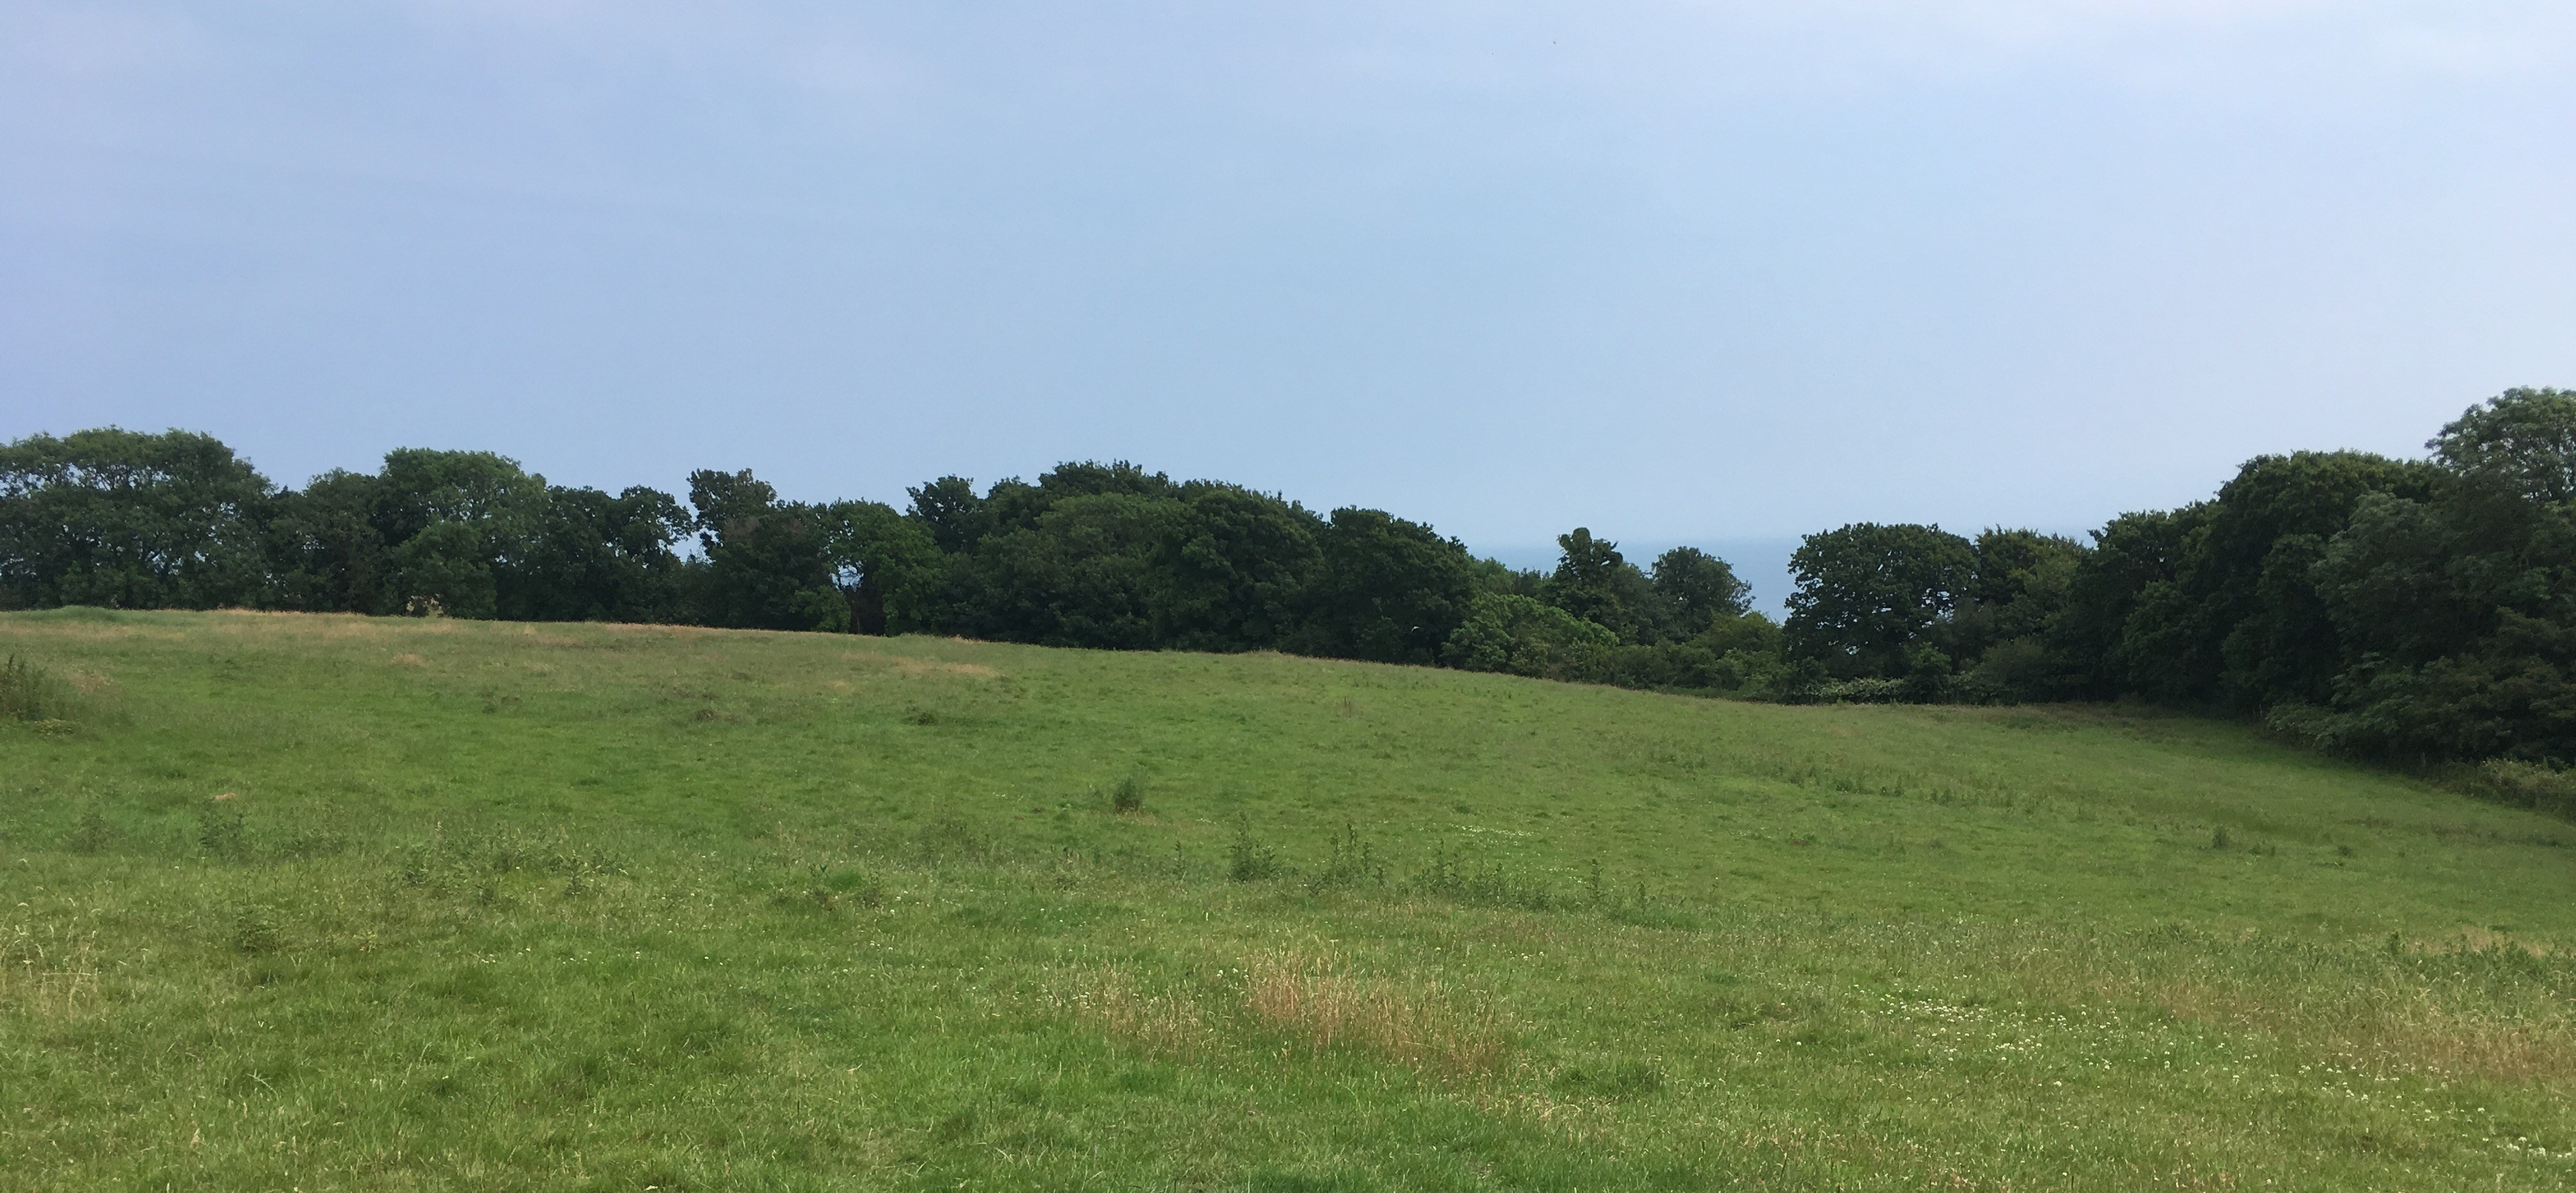 The Environmental Paradox in Hastings Country Park